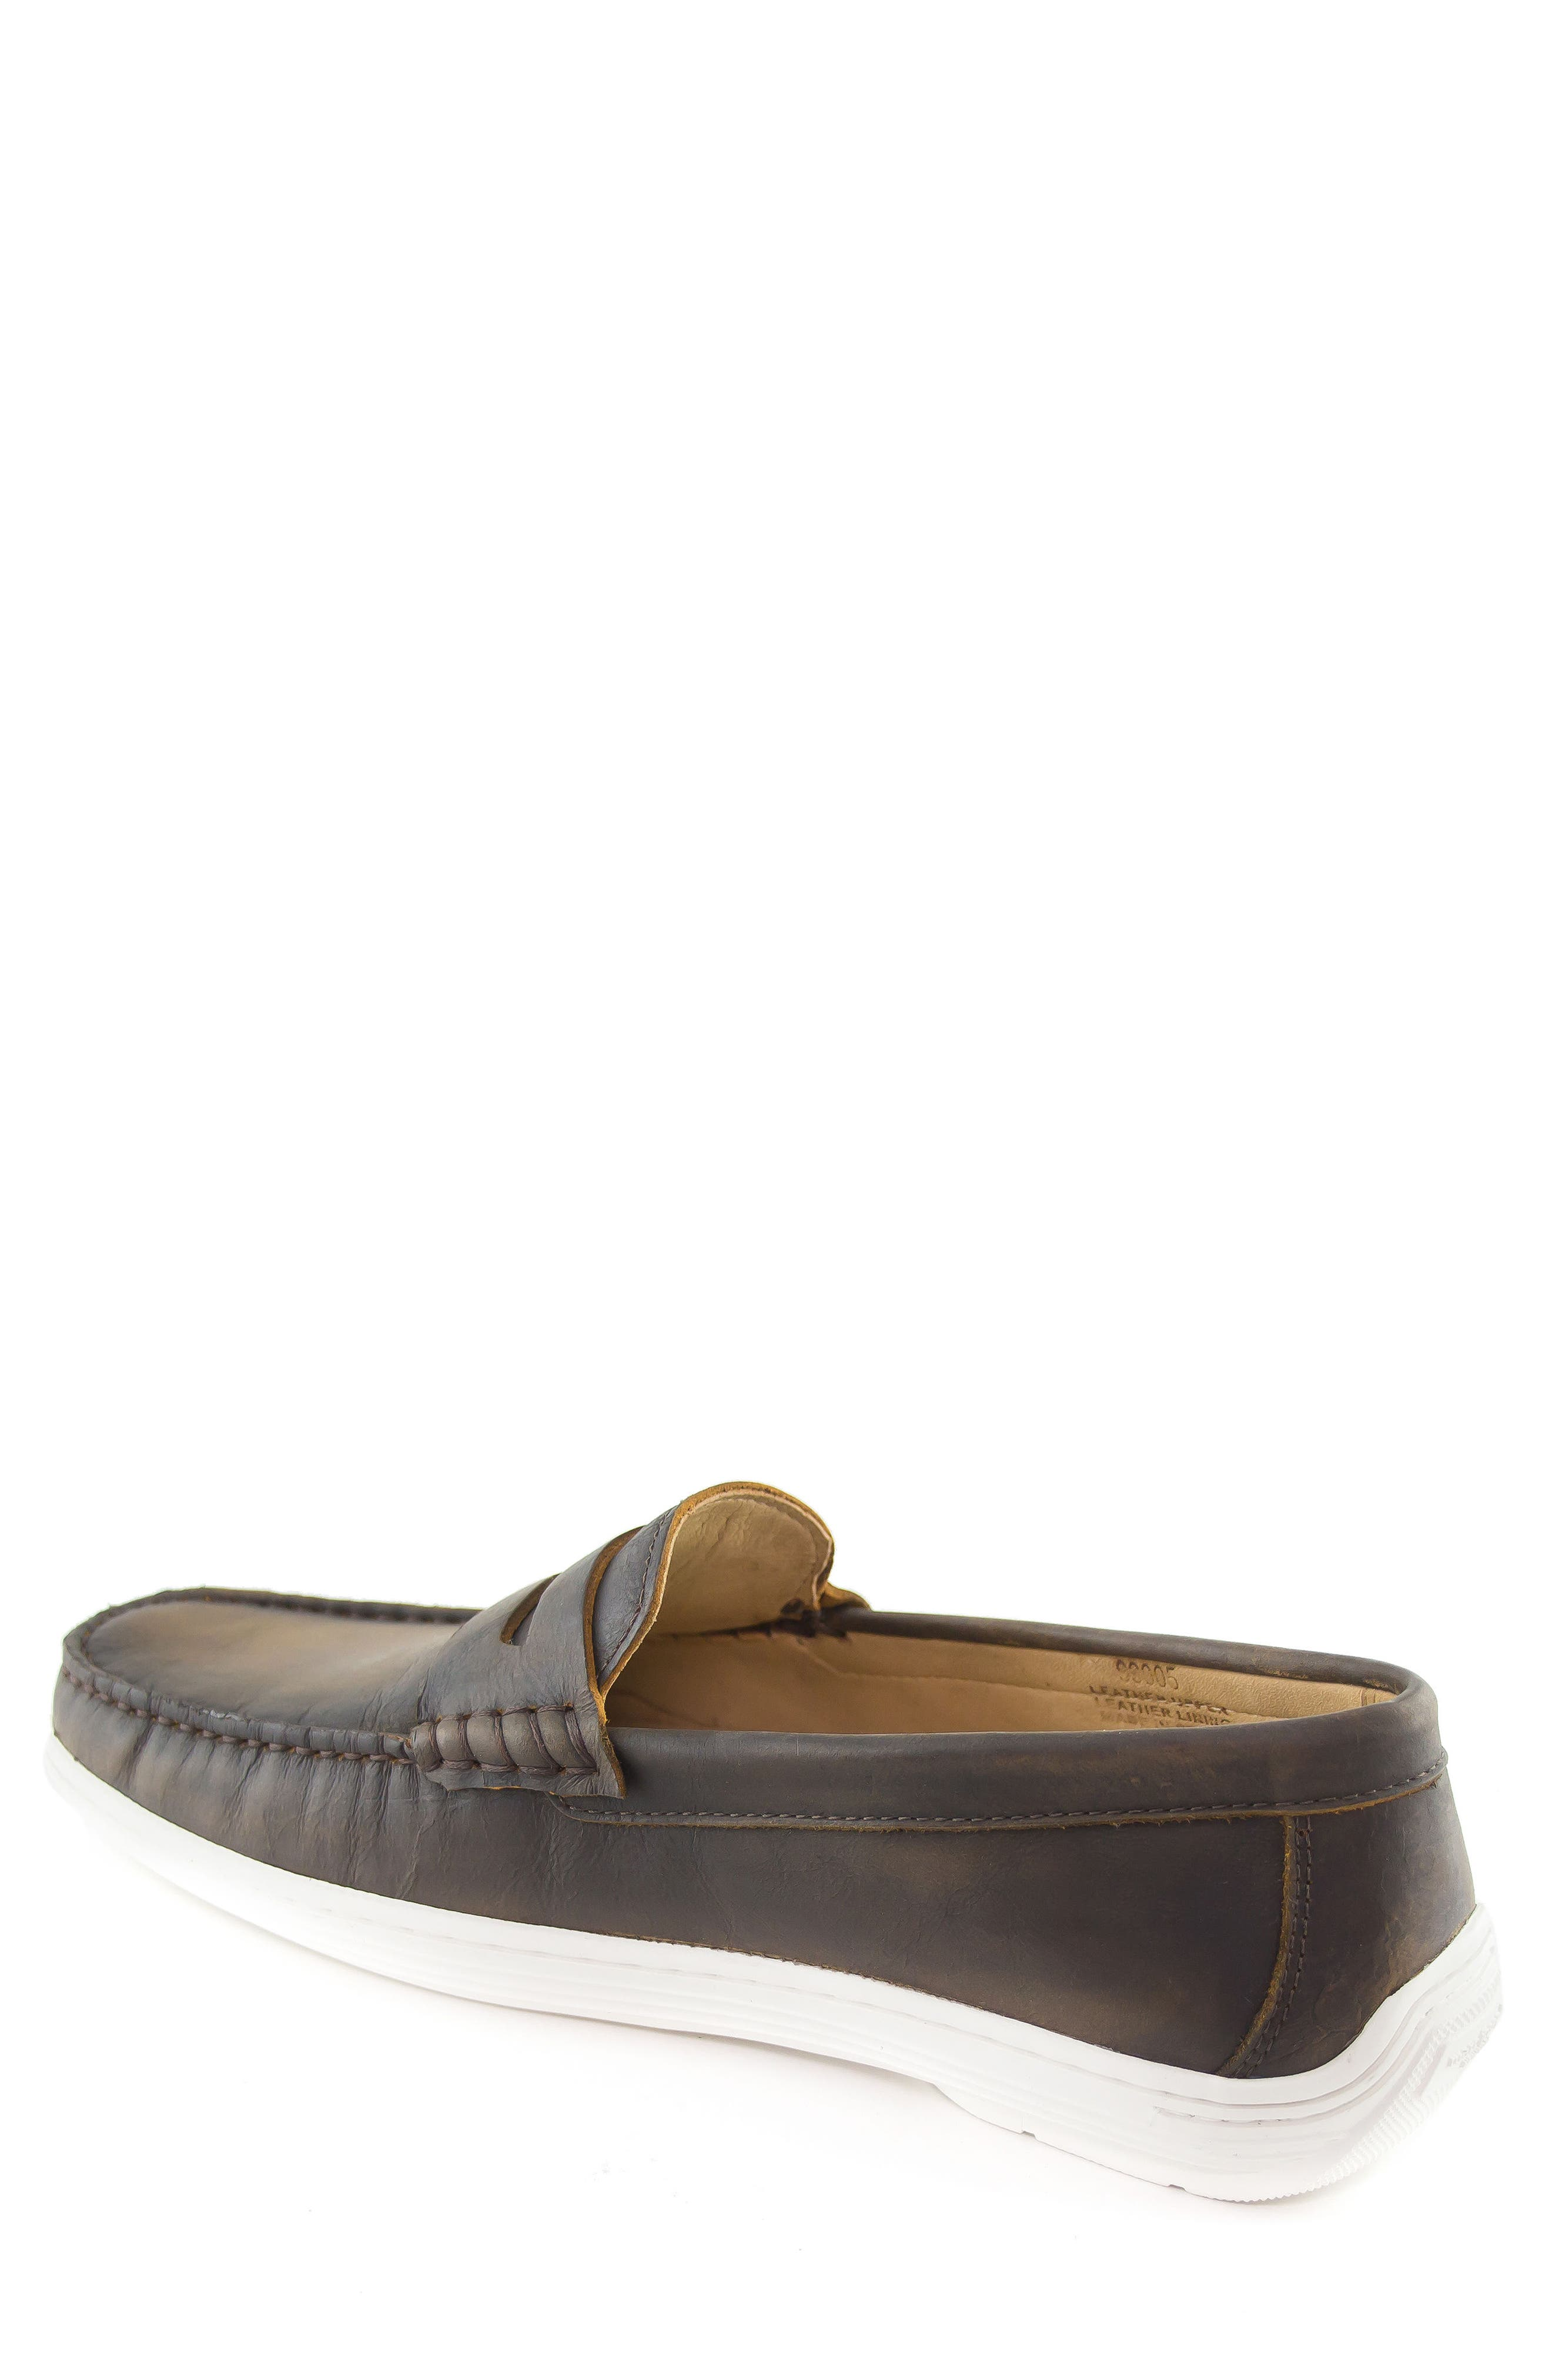 Atlantic Penny Loafer,                             Alternate thumbnail 2, color,                             206